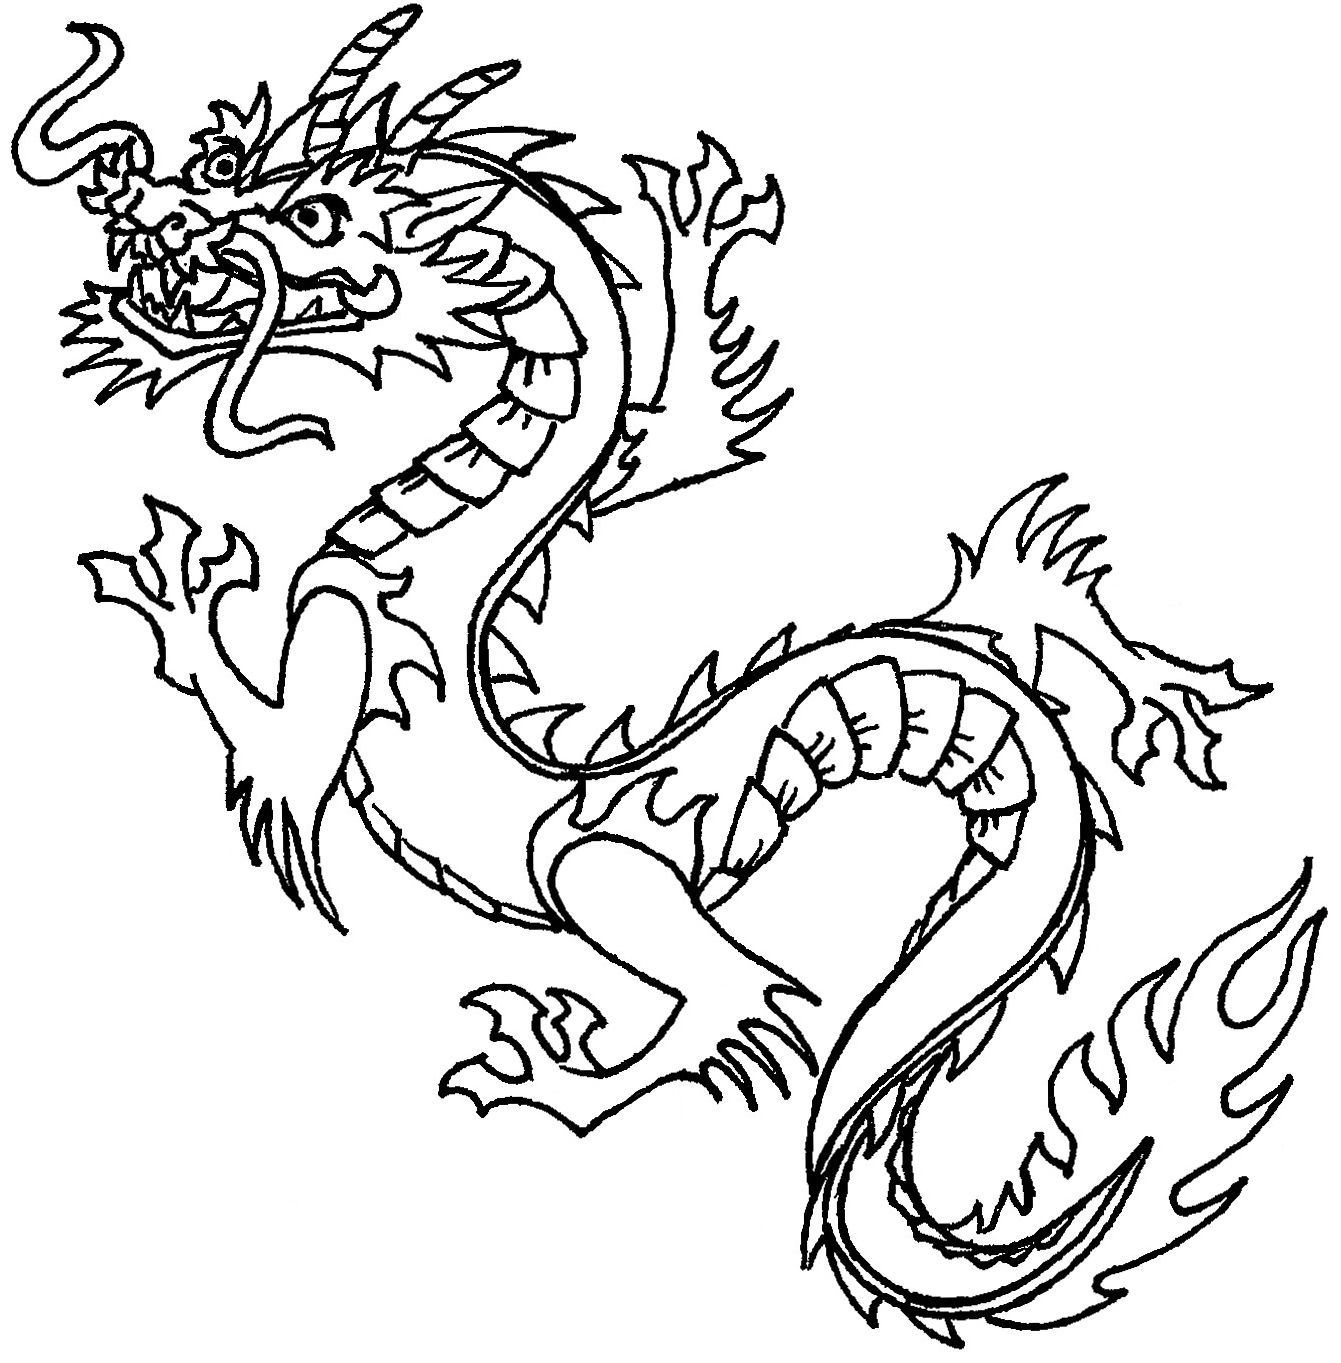 Adult Coloring Book Page With Beautiful Dragon On White Background ... | 1363x1341